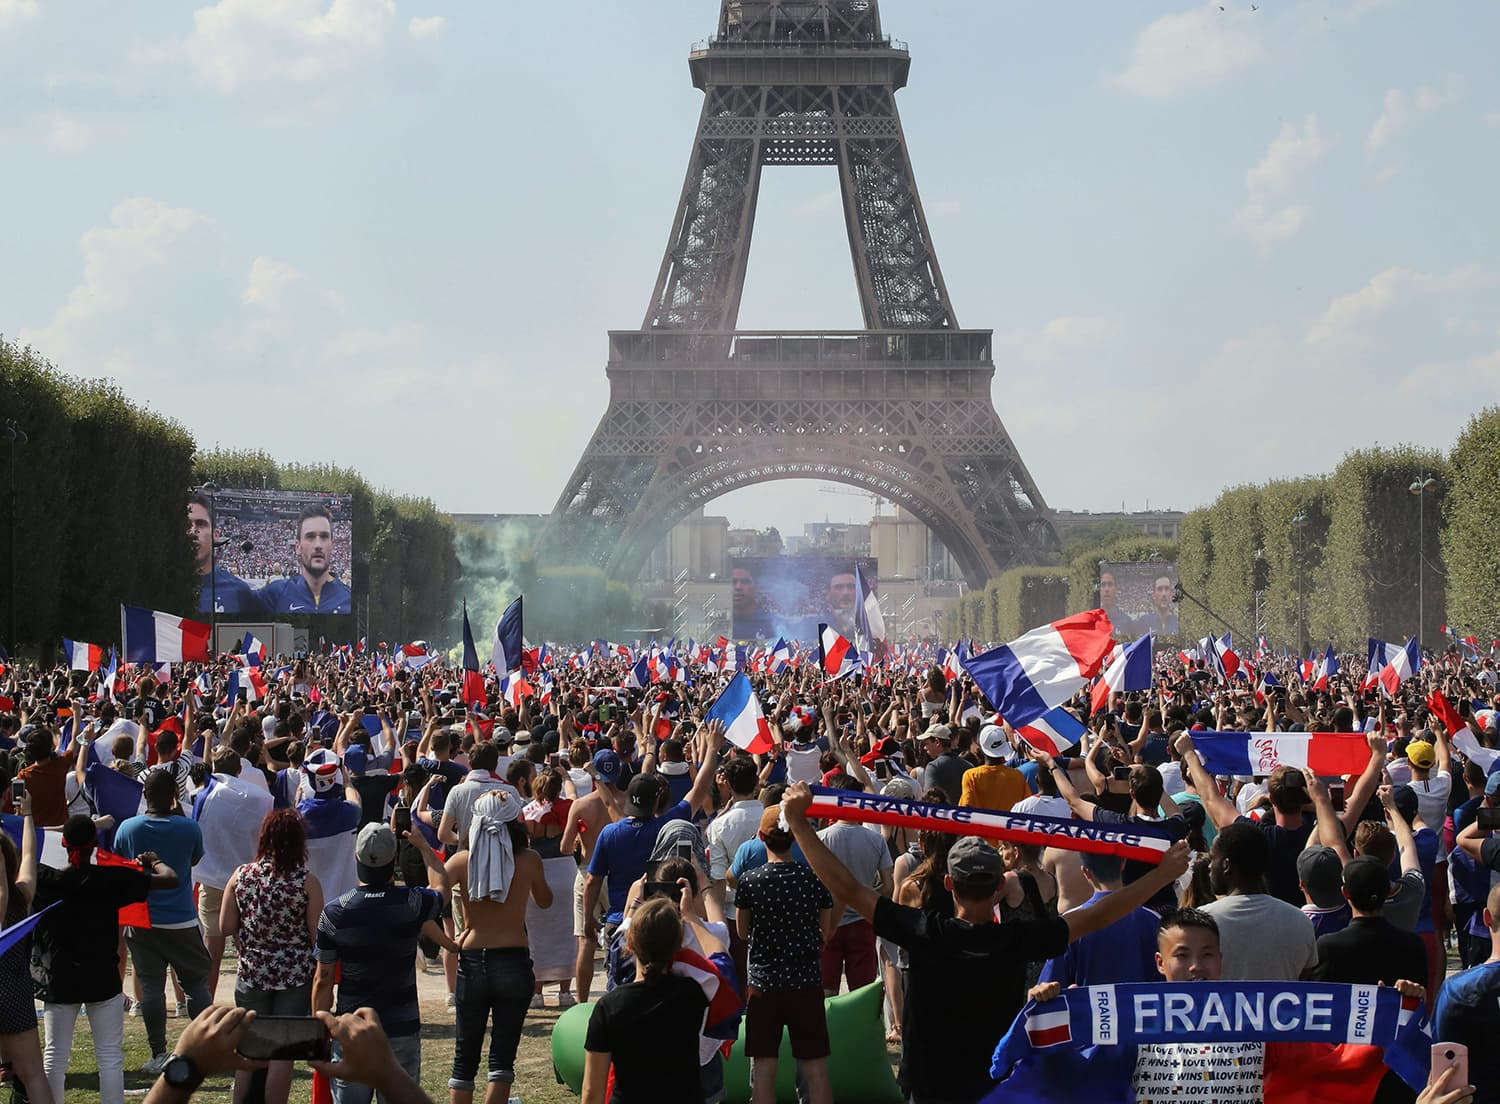 People gather on the fan zone in front of the Eiffel Tower to watch the Russia 2018 World Cup final football match between France and Croatia, on the Champ de Mars in Paris. — AFP